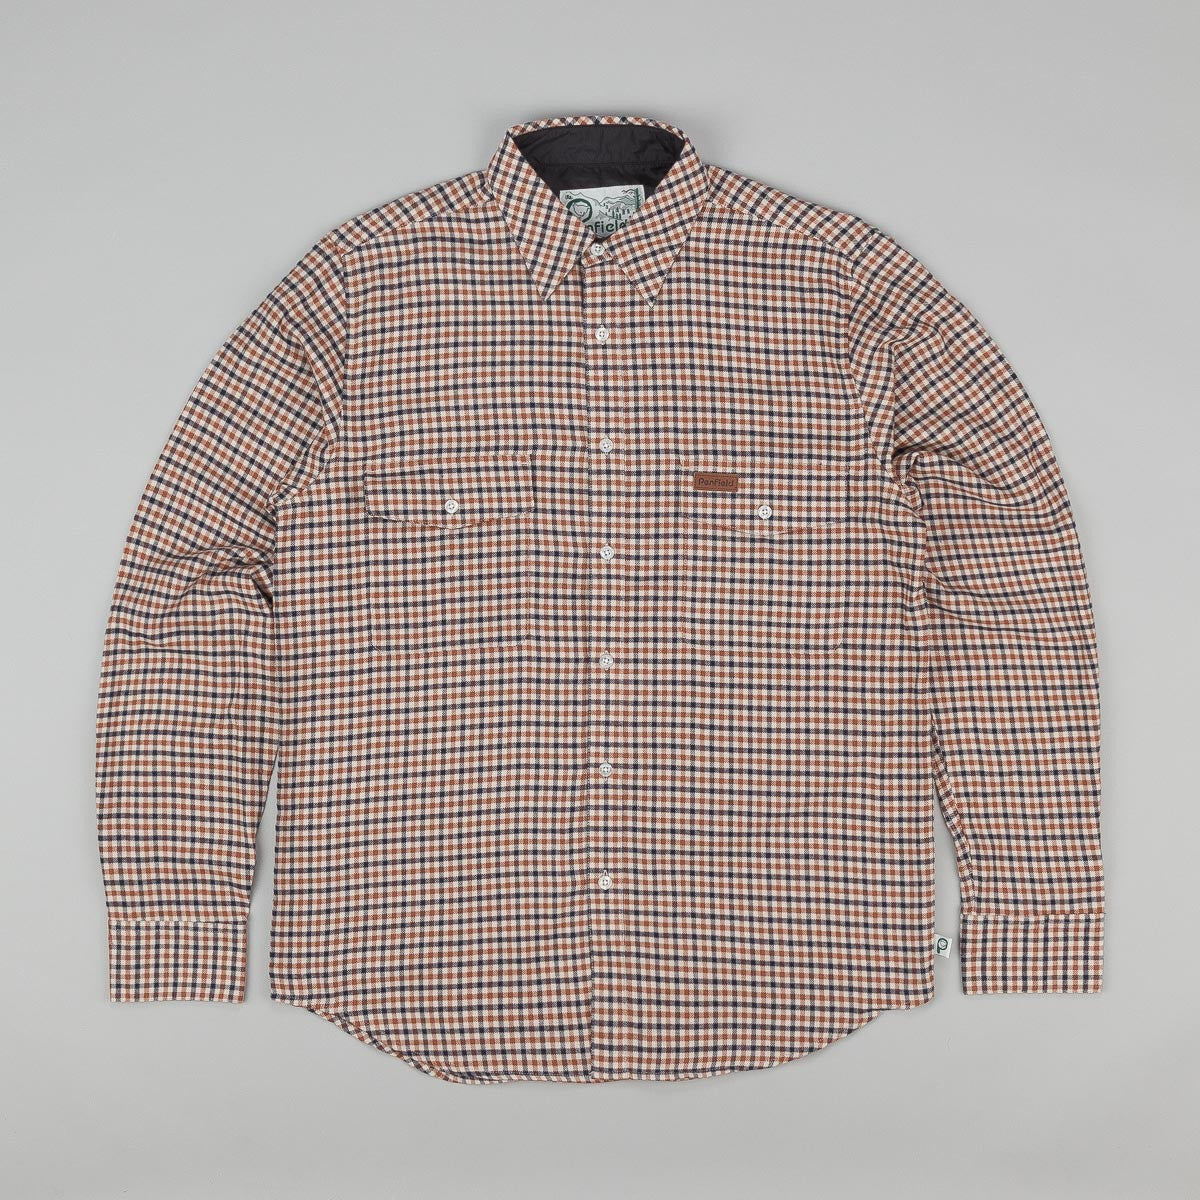 Penfield Ashley Long Sleeve Plaid Shirt